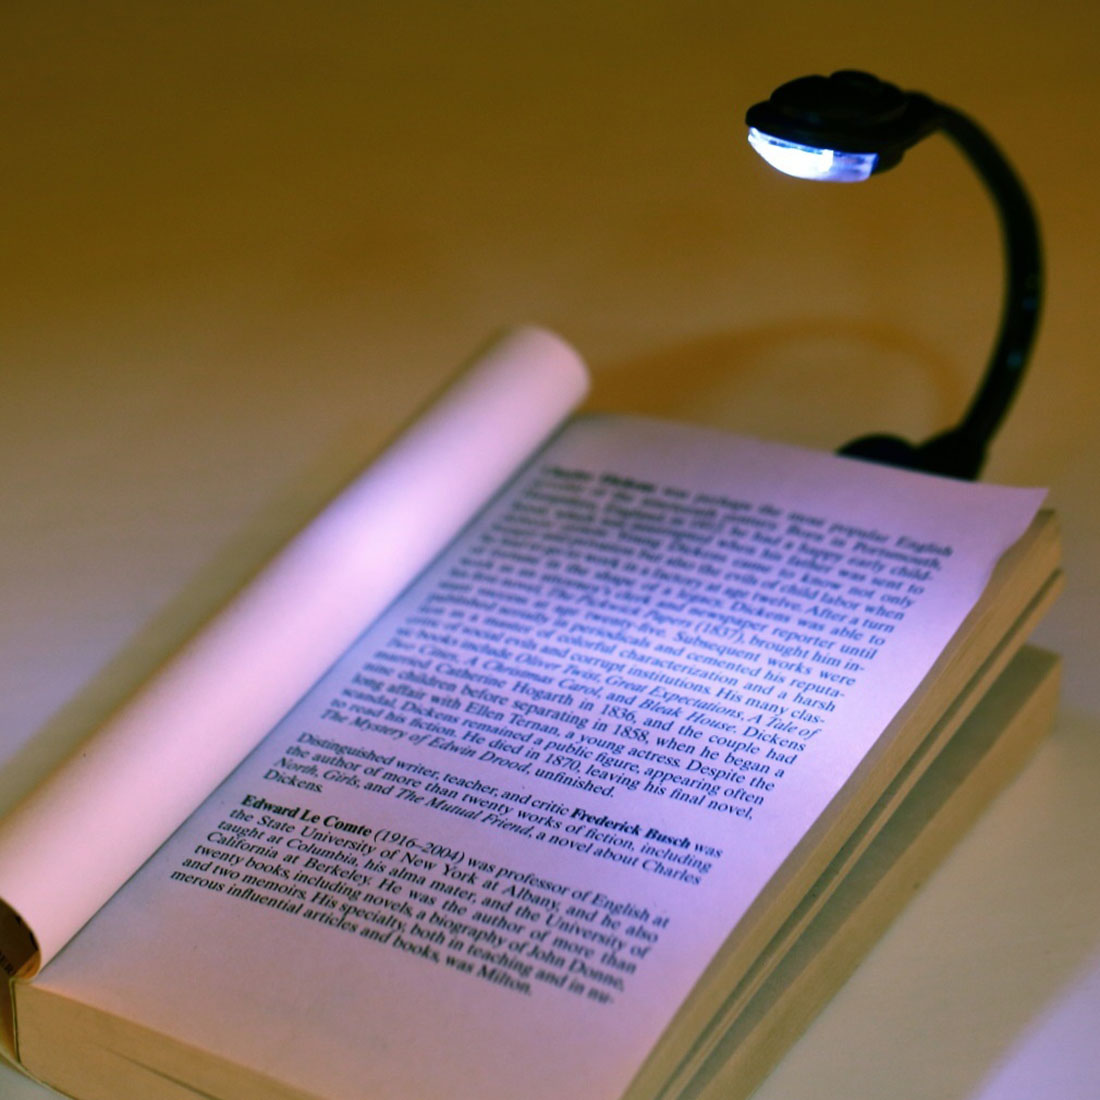 Hot Adjustable Clip Mini Portable LED Book Reading Light Lamp Flexible USB Novelty Light For Laptop PC Music Stand Light Lamp(China)